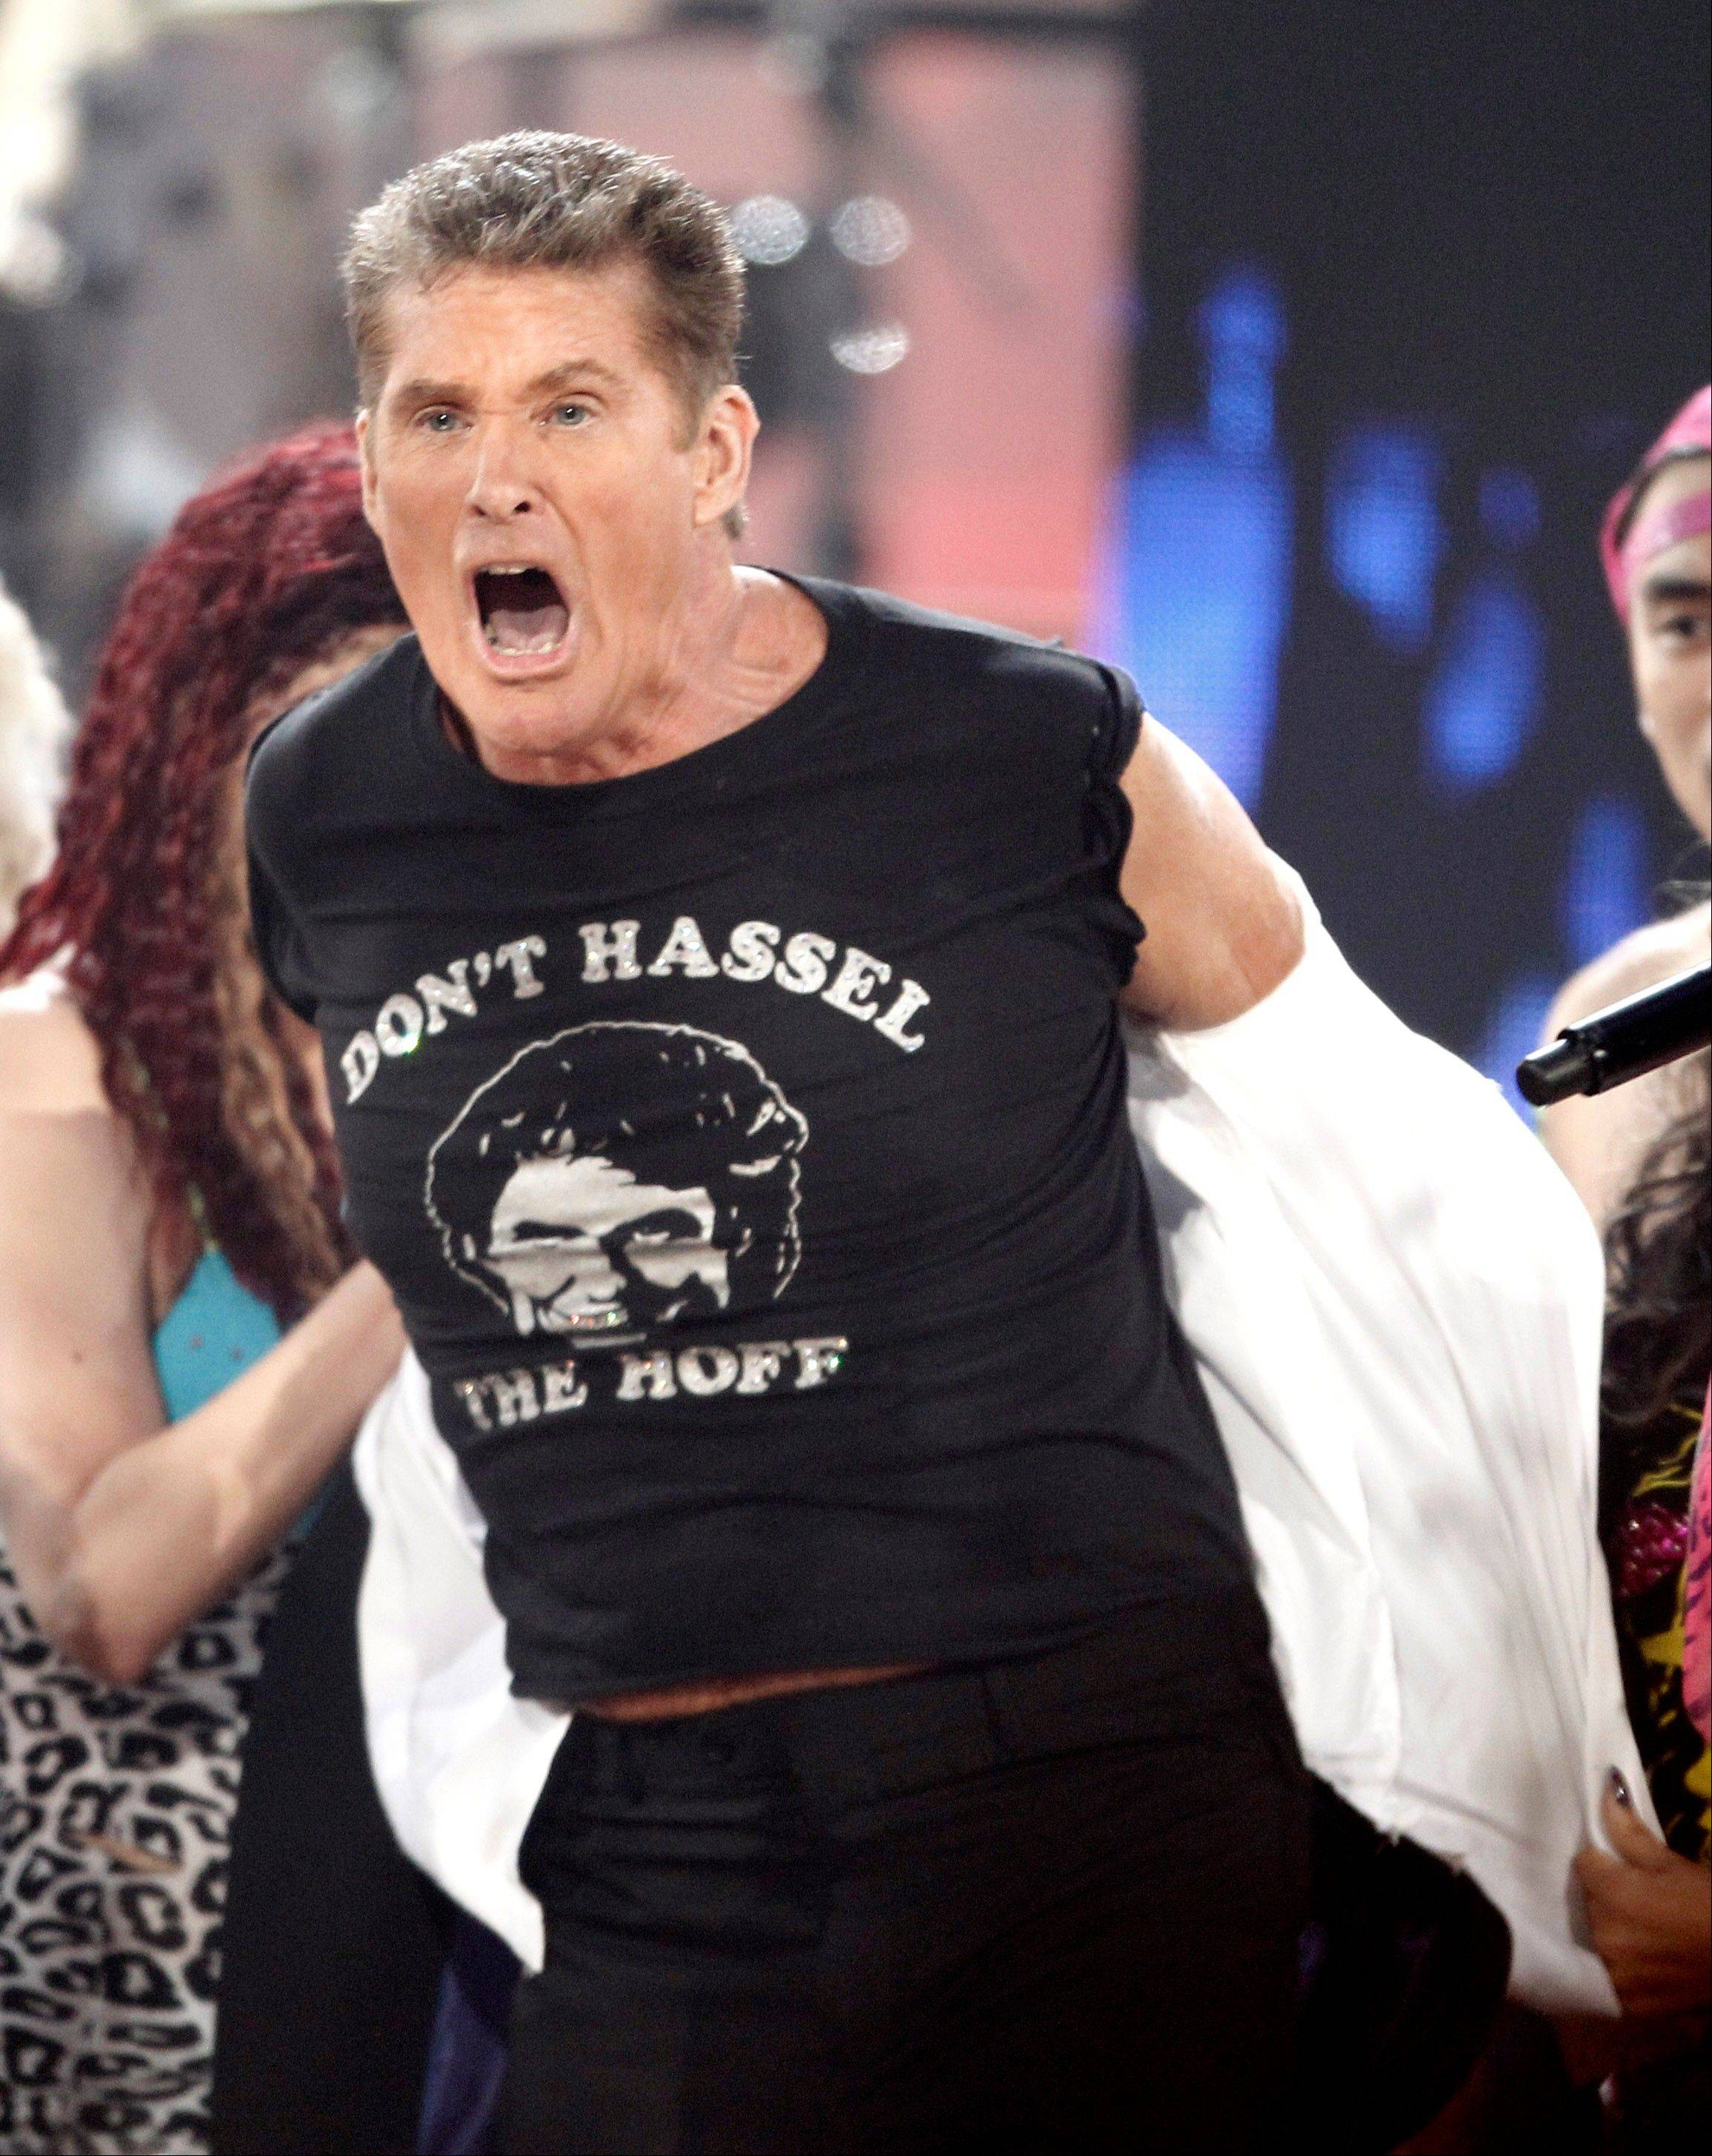 David Hasselhoff dances onstage while LMFAO performs at the 39th Annual American Music Awards on Sunday, Nov. 20, 2011 in Los Angeles.